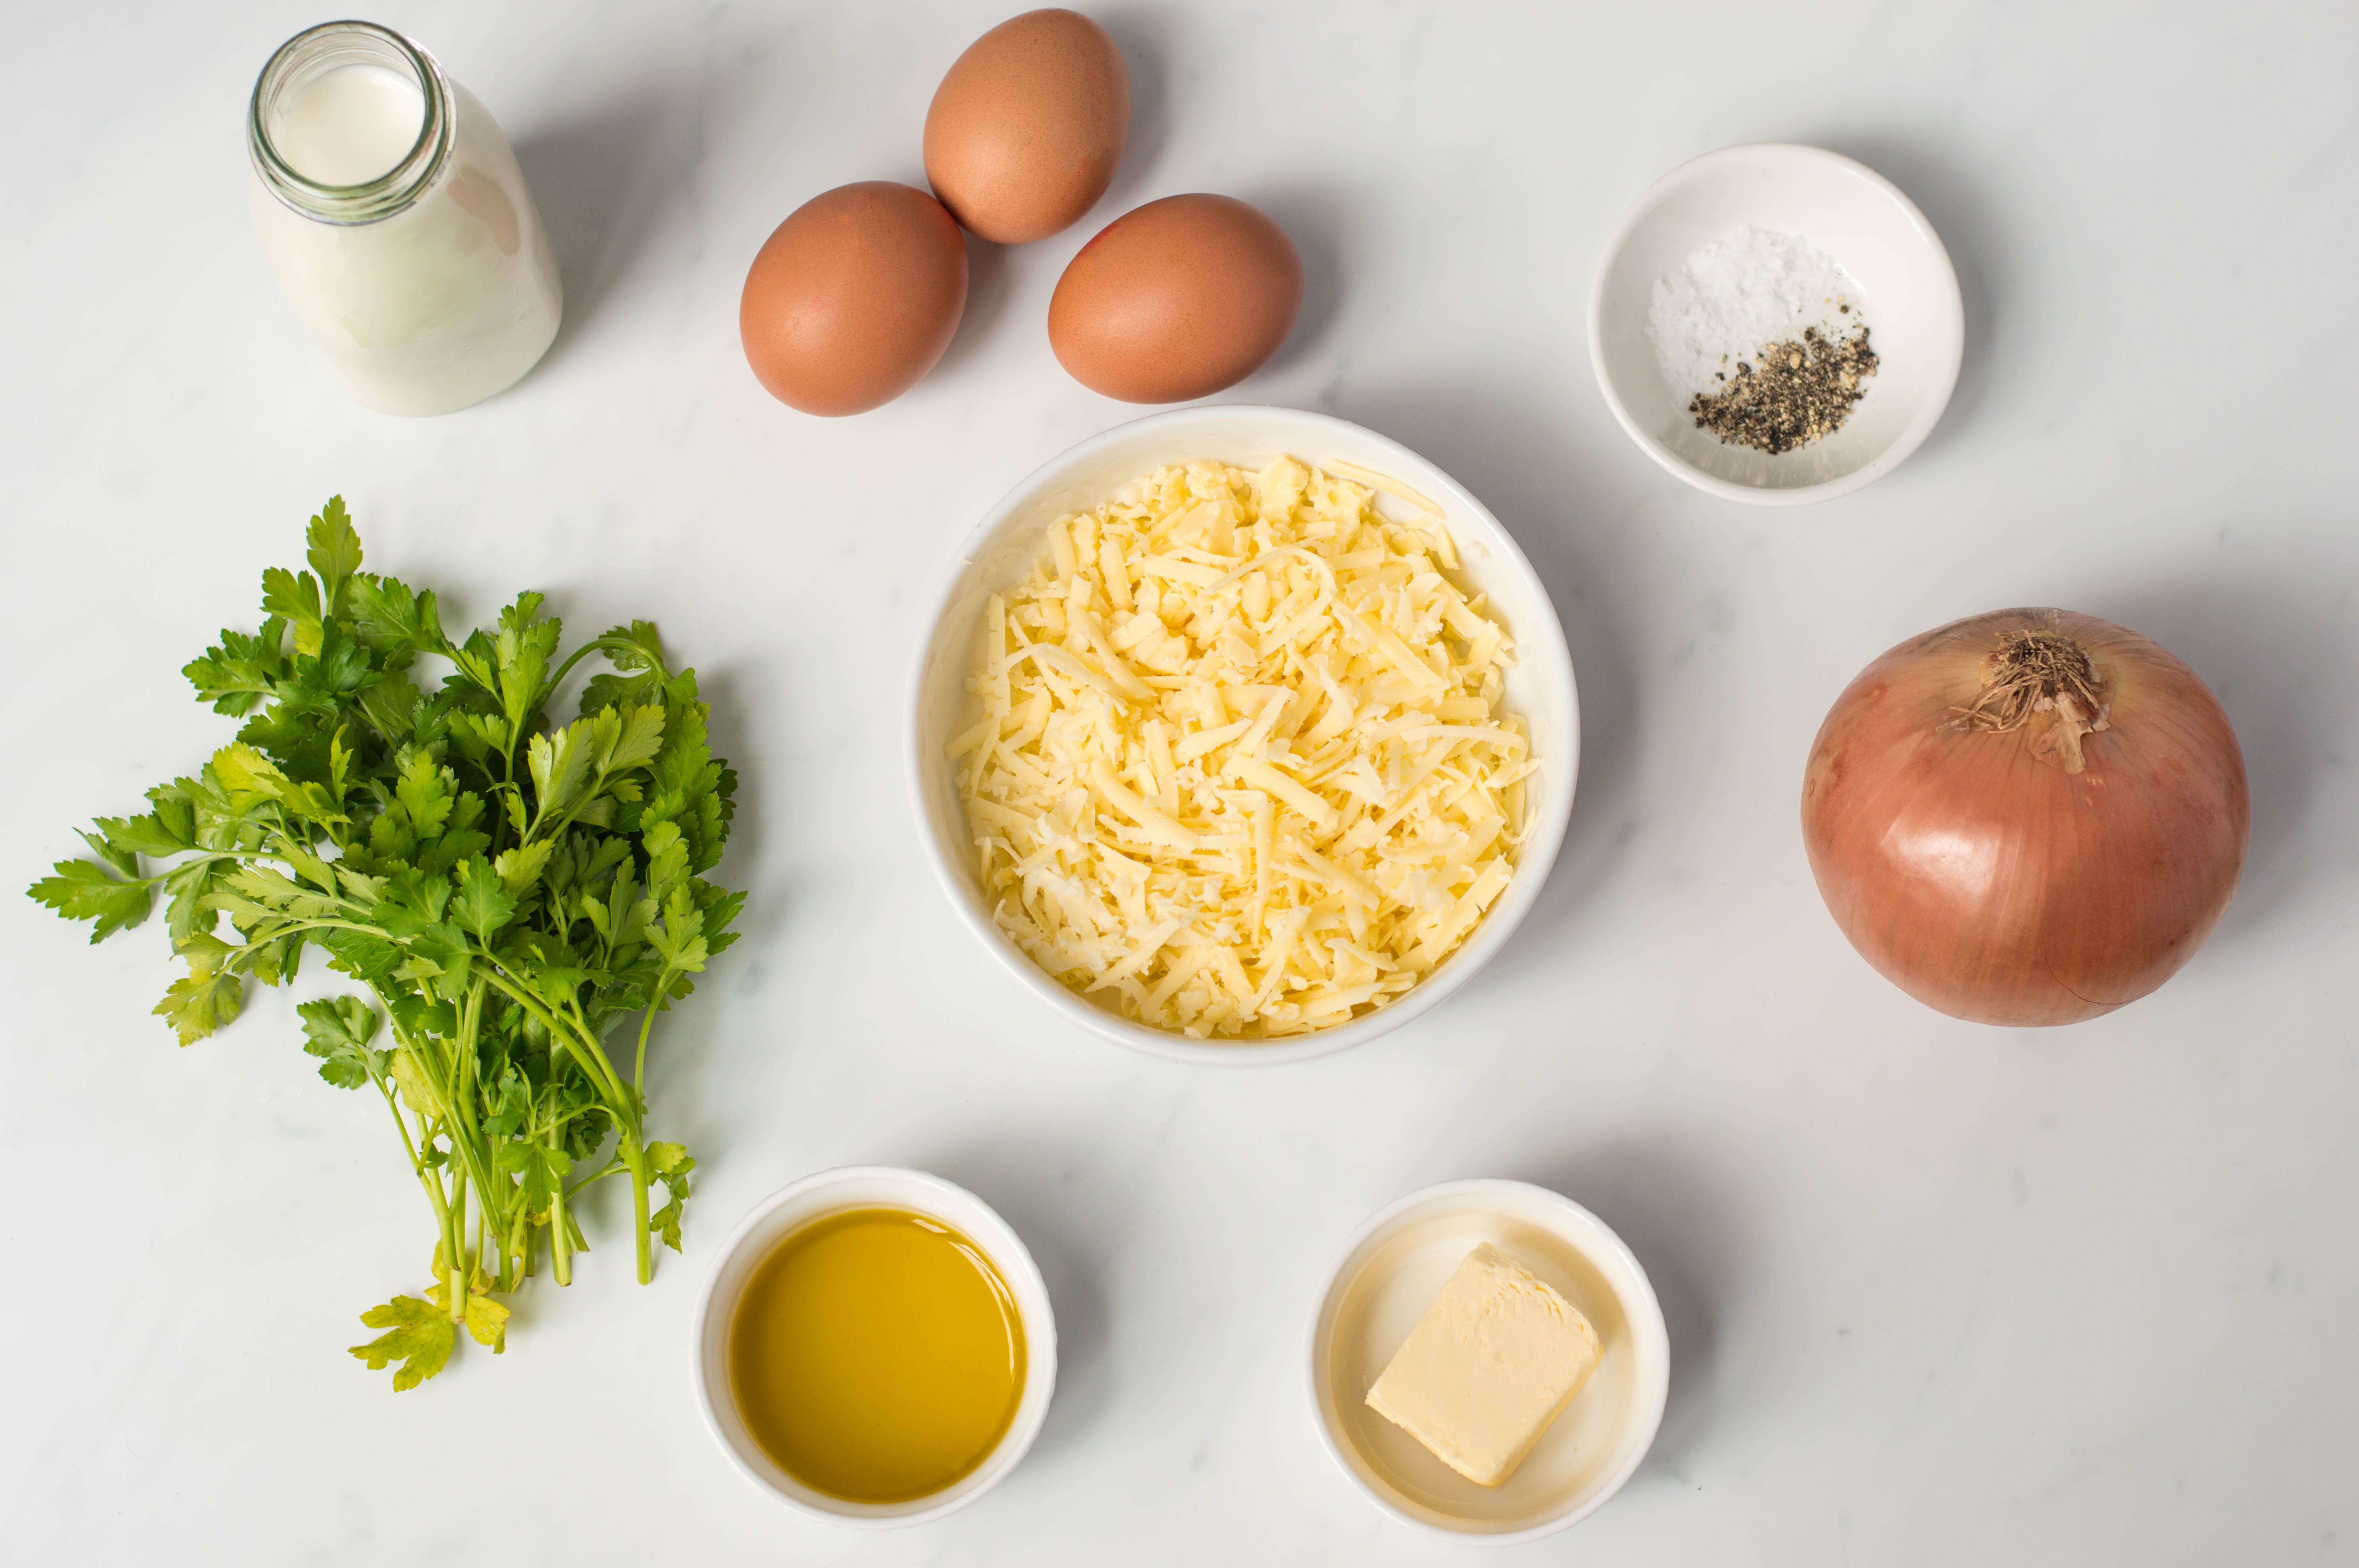 Cheese and onion flan filling ingredients